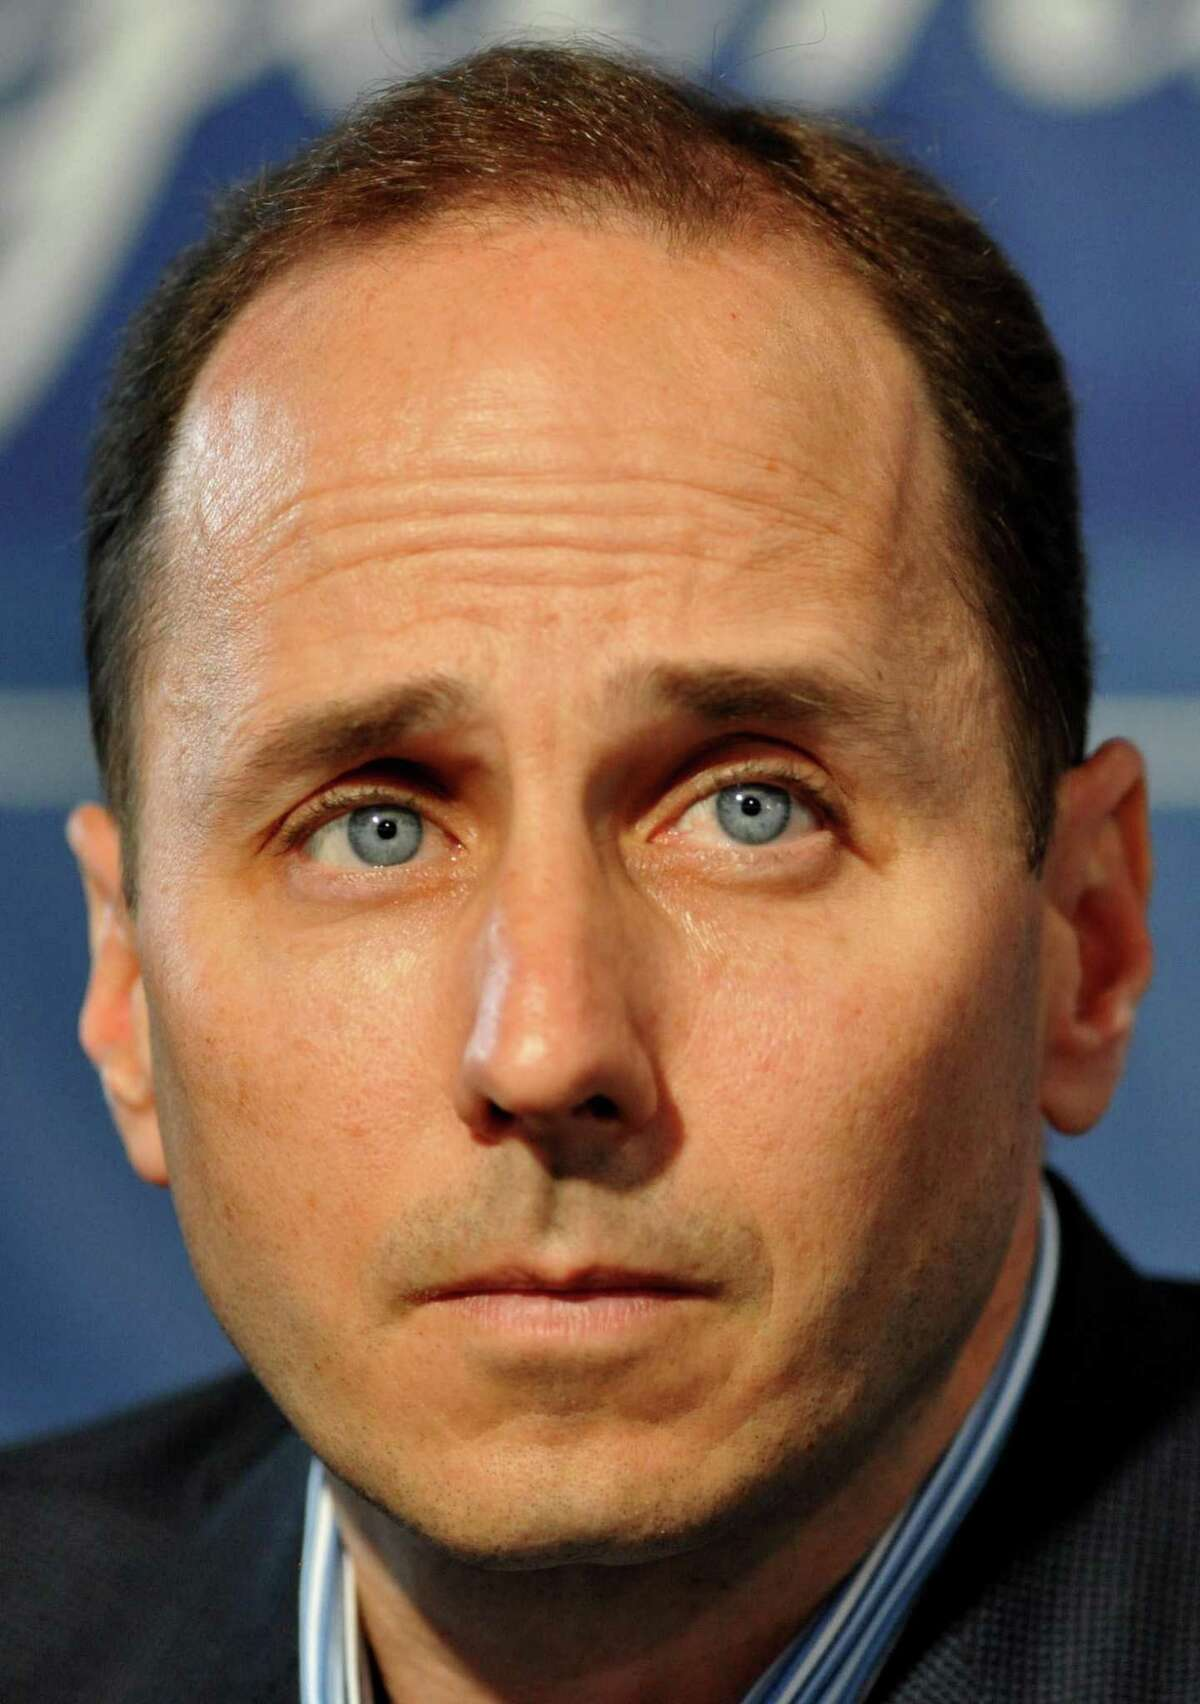 New York Yankees General Manager Brian Cashman, who lives in Darien, is slated to accompany Santa Claus on a 22-floor rappel down the Landmark Building in Stamford, Conn., Sunday.